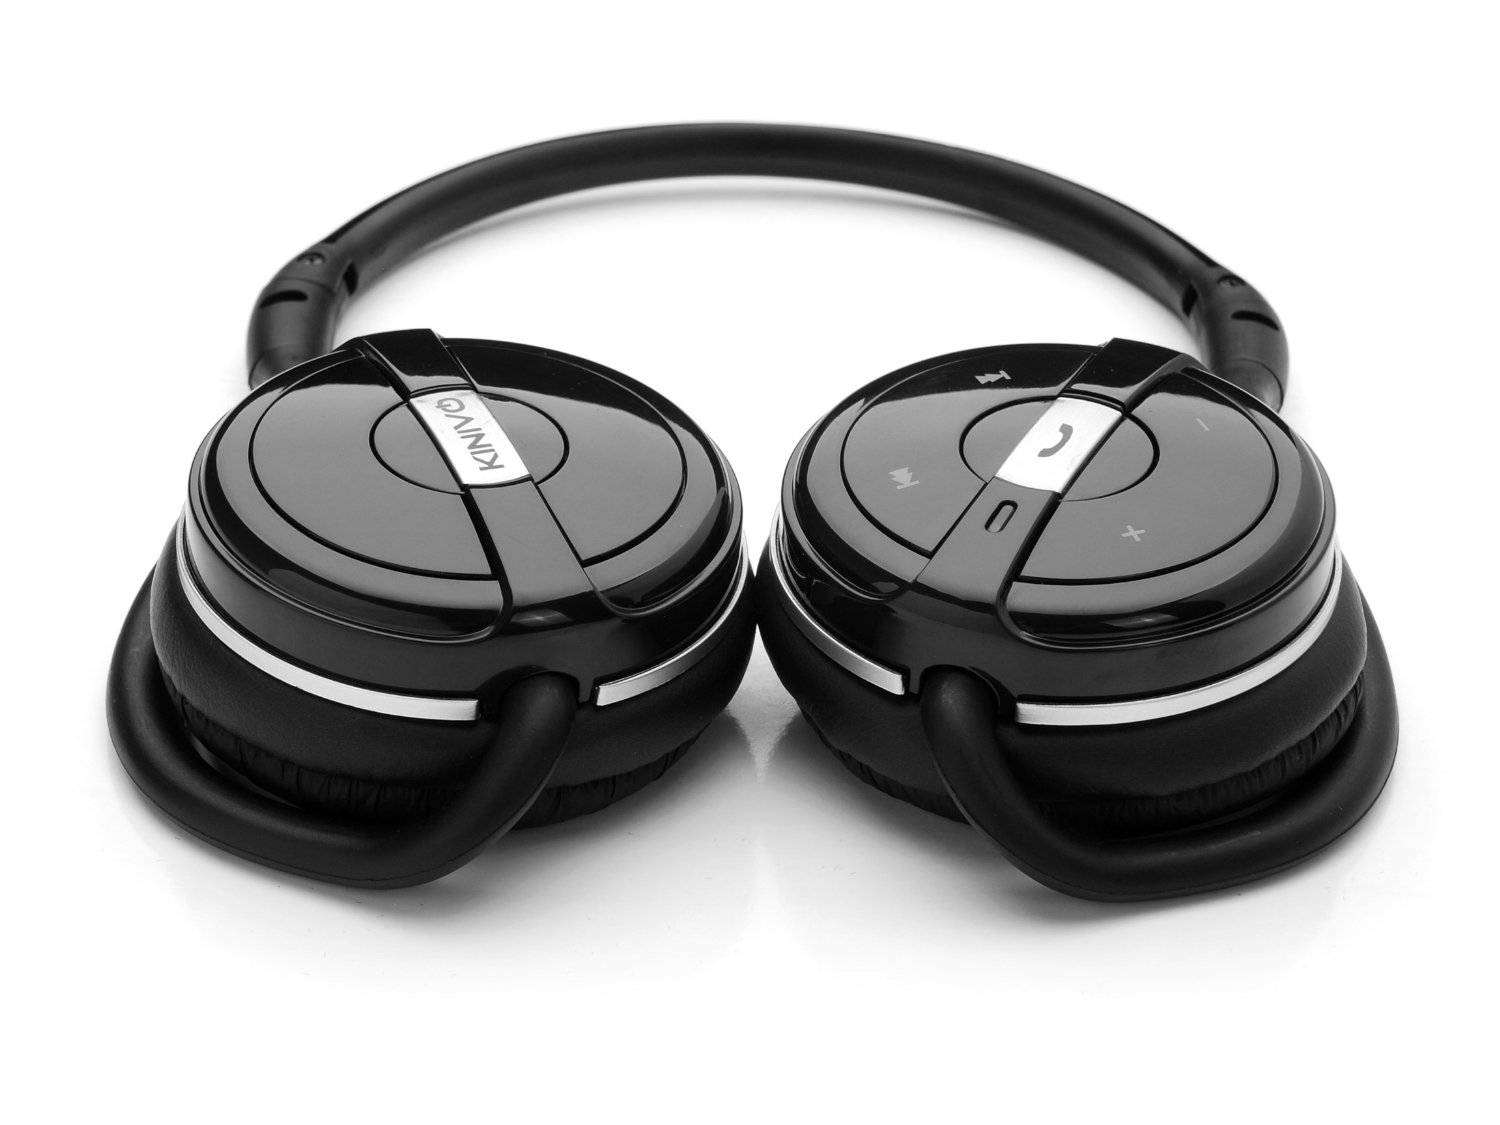 kinivo bth240 review headphones unboxed. Black Bedroom Furniture Sets. Home Design Ideas